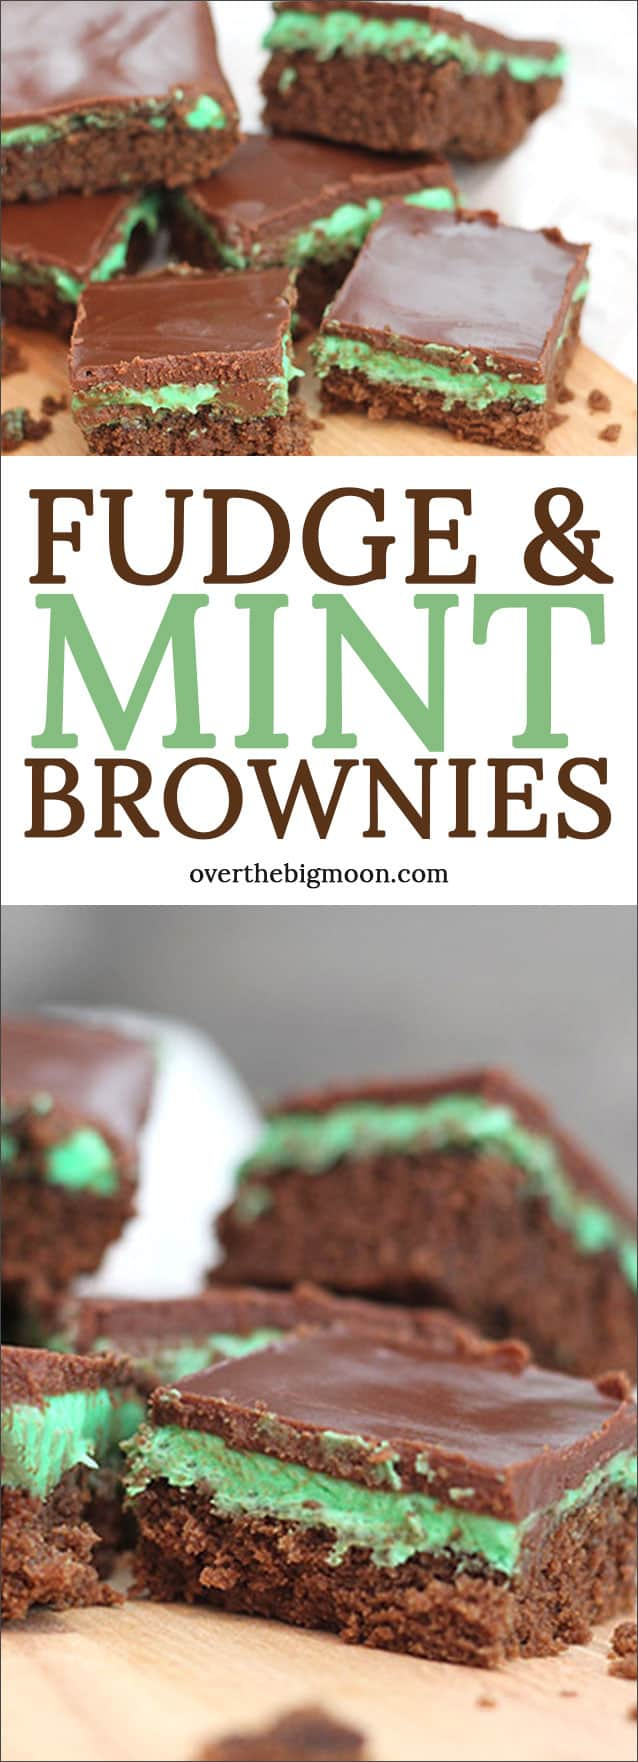 Fudge and Mint Brownies - the perfect St.Patrick's Day treat! Recipe from overthebigmoon.com!